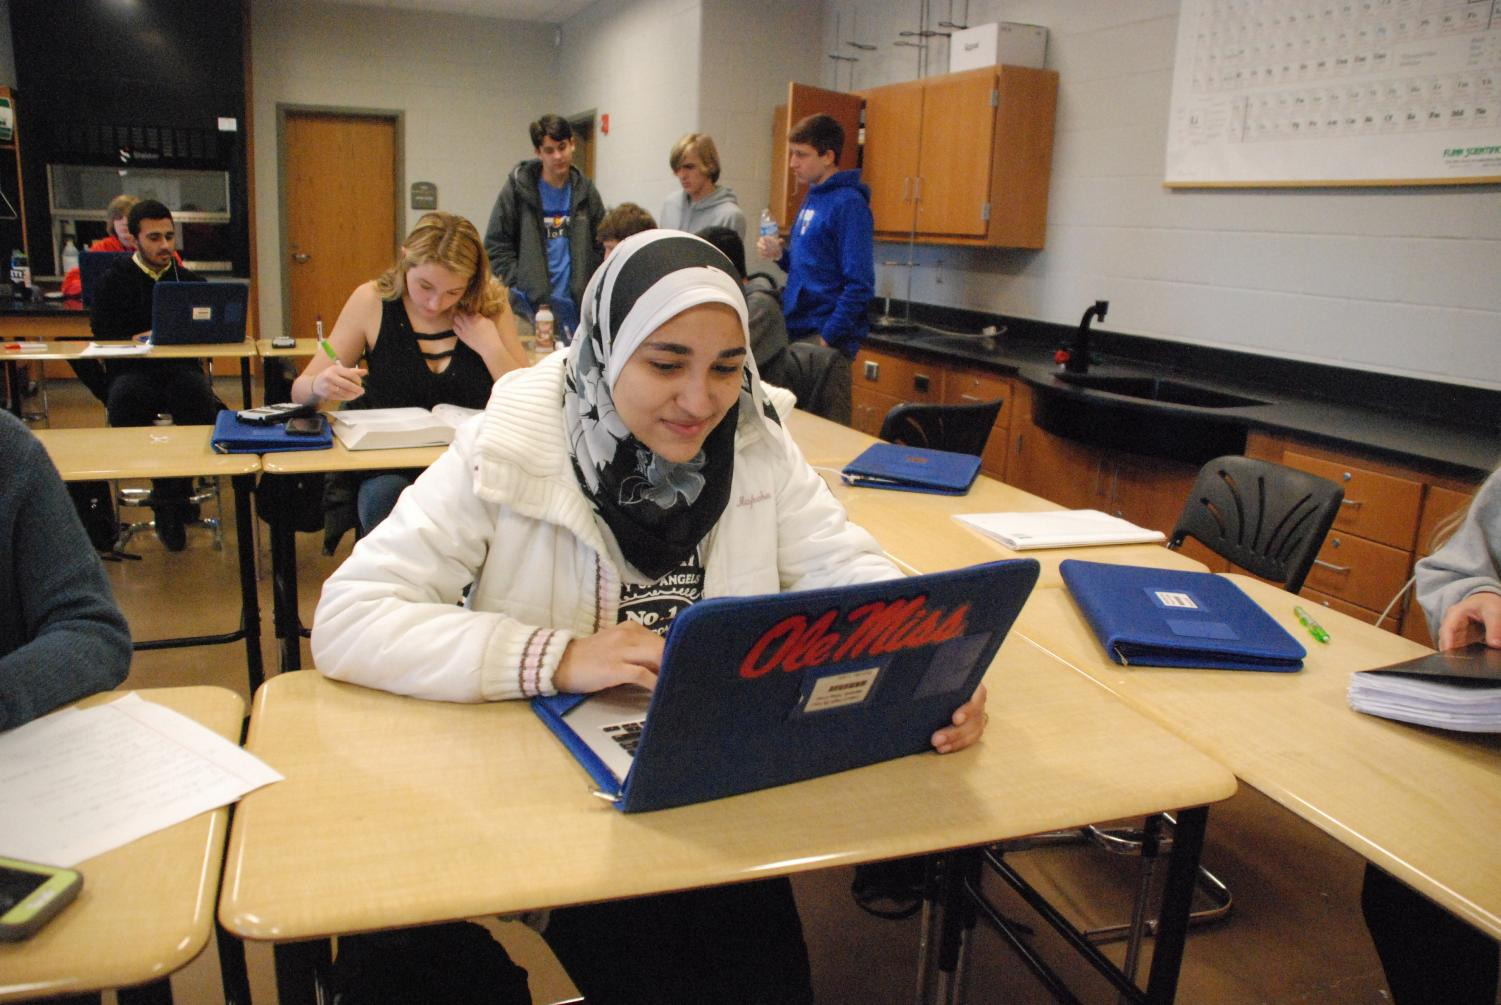 Senior Heba Marzouk continues to work hard towards her goal of graduating early. She decided to graduate early after realizing in her sophomore year that she only needed a few more credits to graduate.